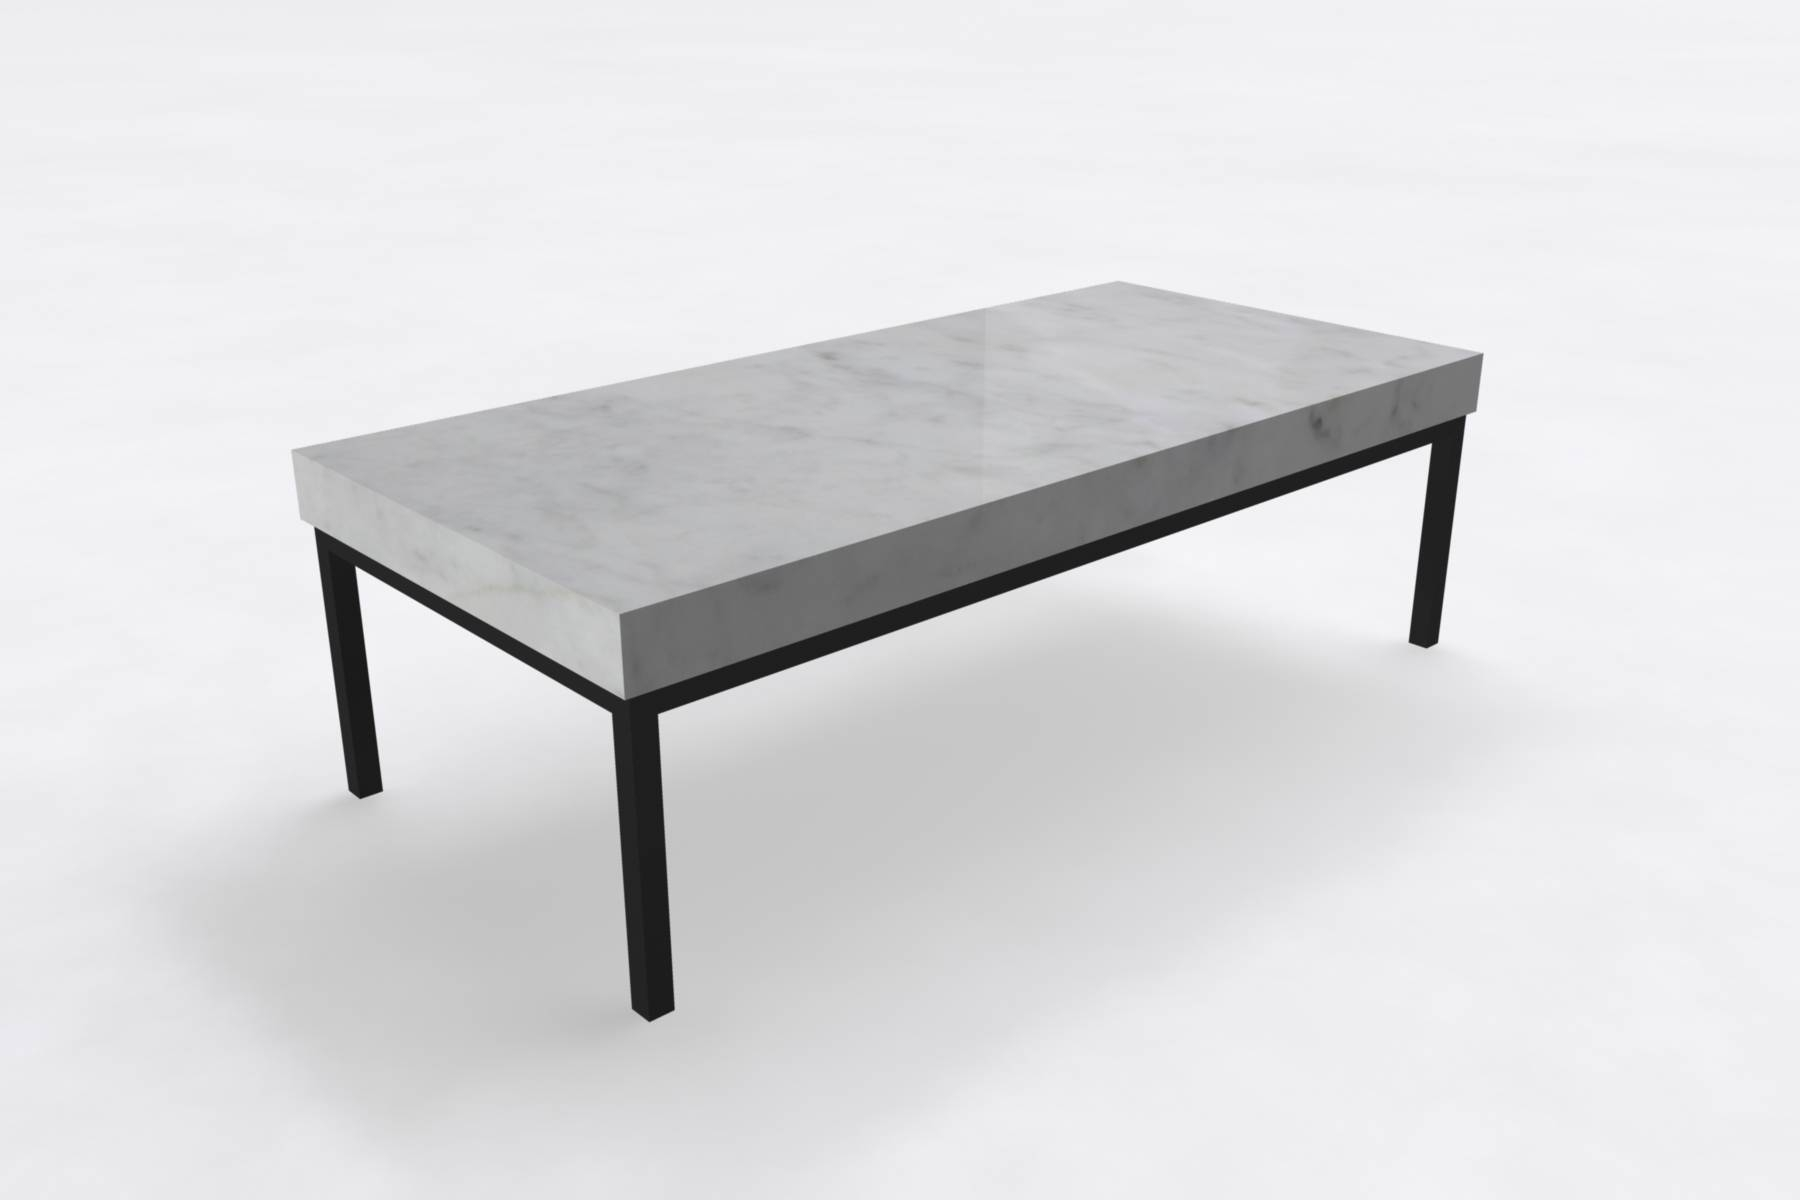 Marble Natural Stone Coffee Table Aus. | Sydney Design World pertaining to Stone Coffee Table (Image 8 of 15)